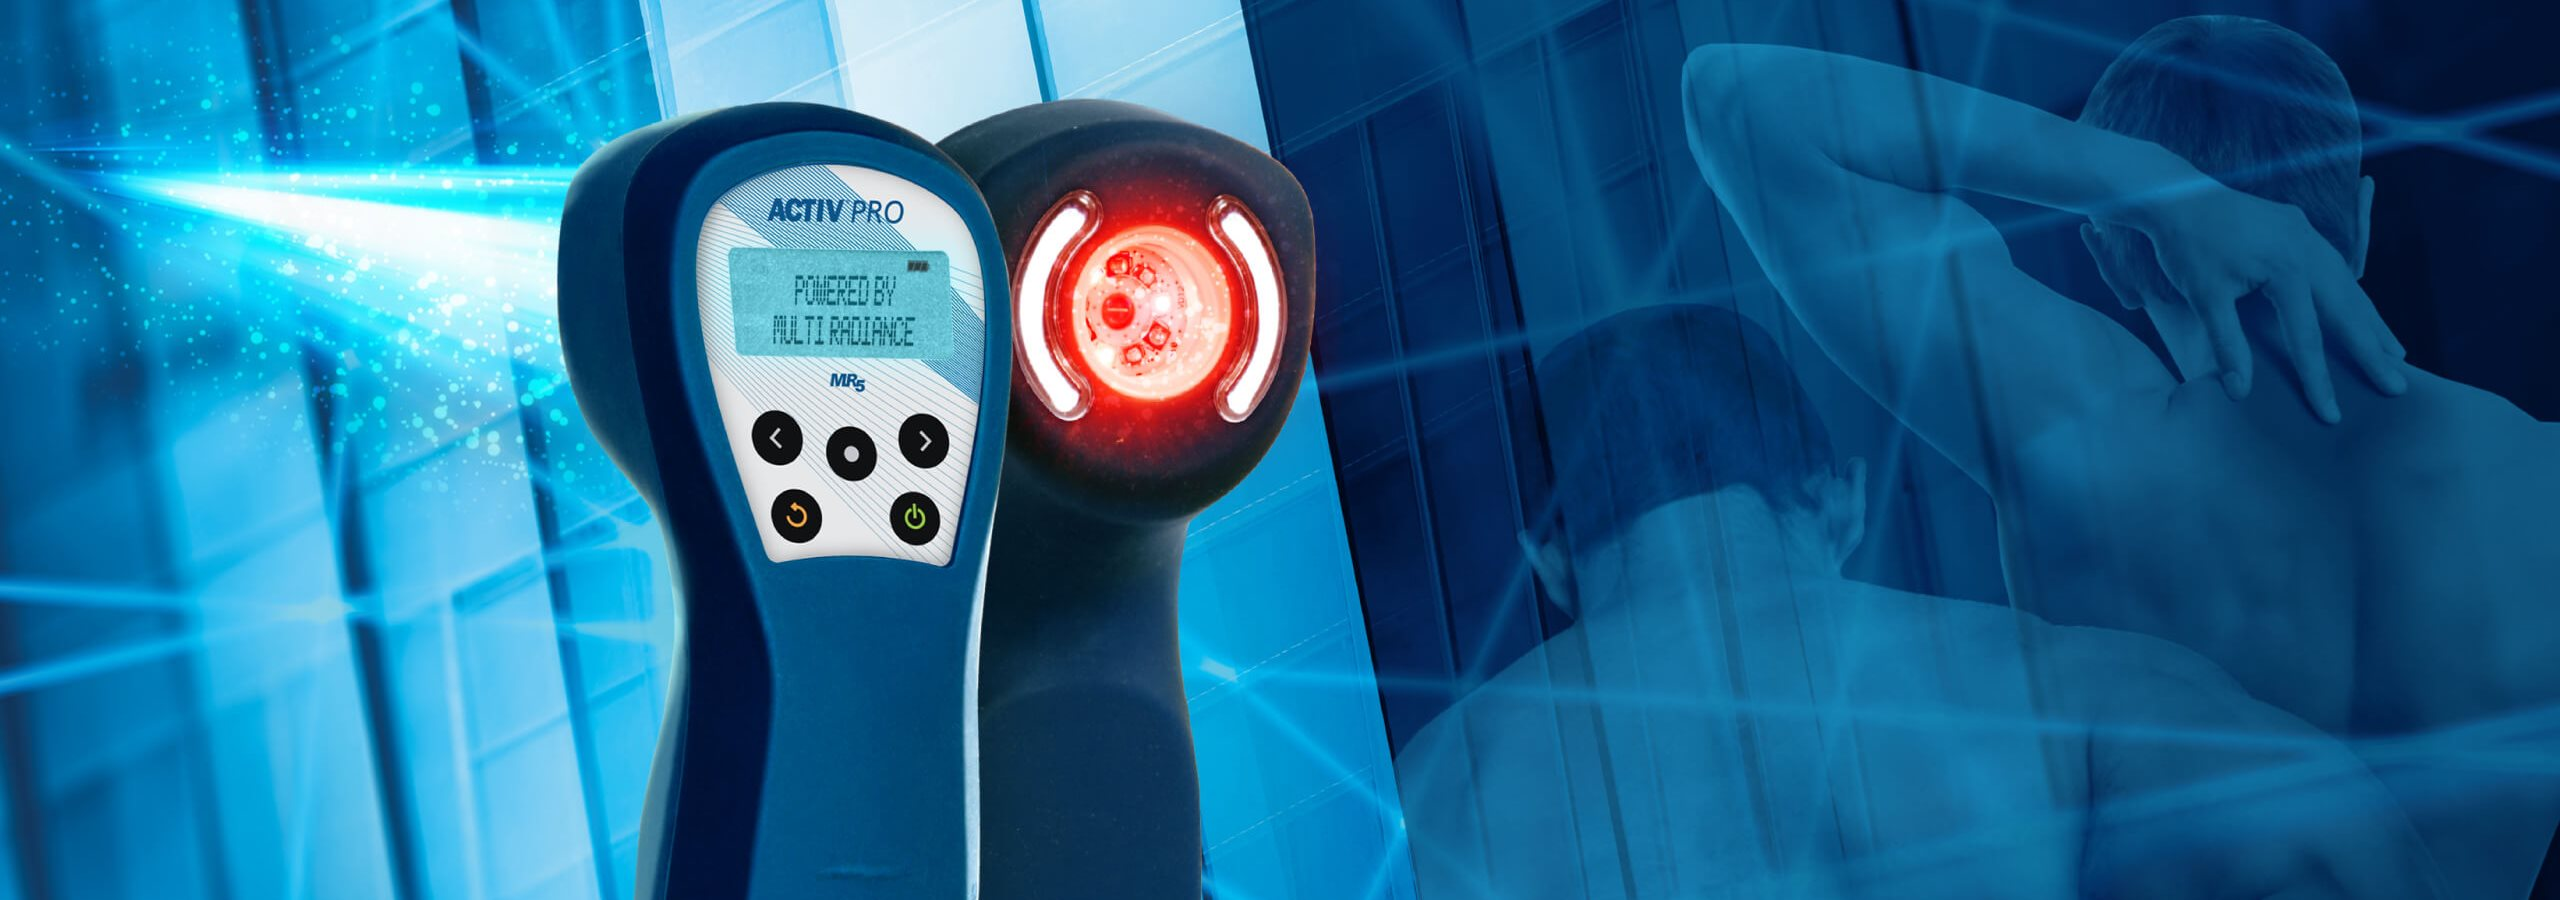 Introducing the NEW Activ PRO and Activ PRO LaserStim